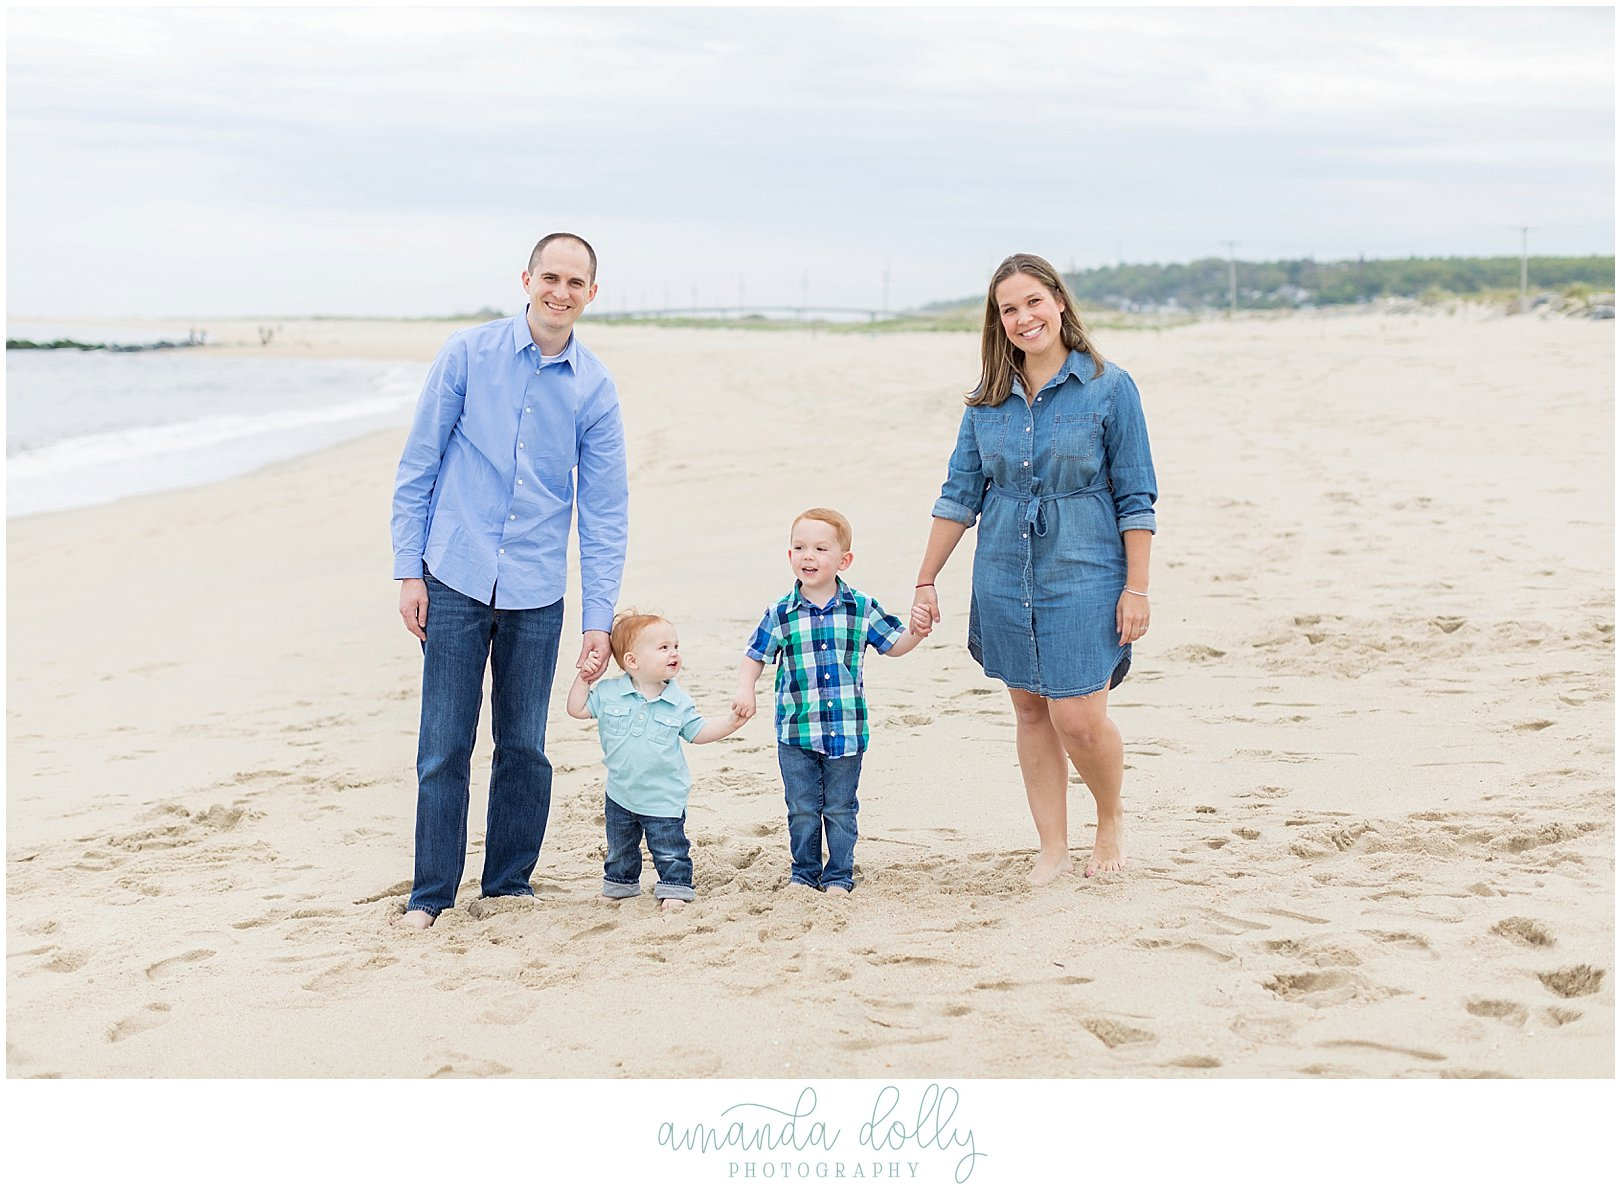 Sandy Hook Beach Family Photography